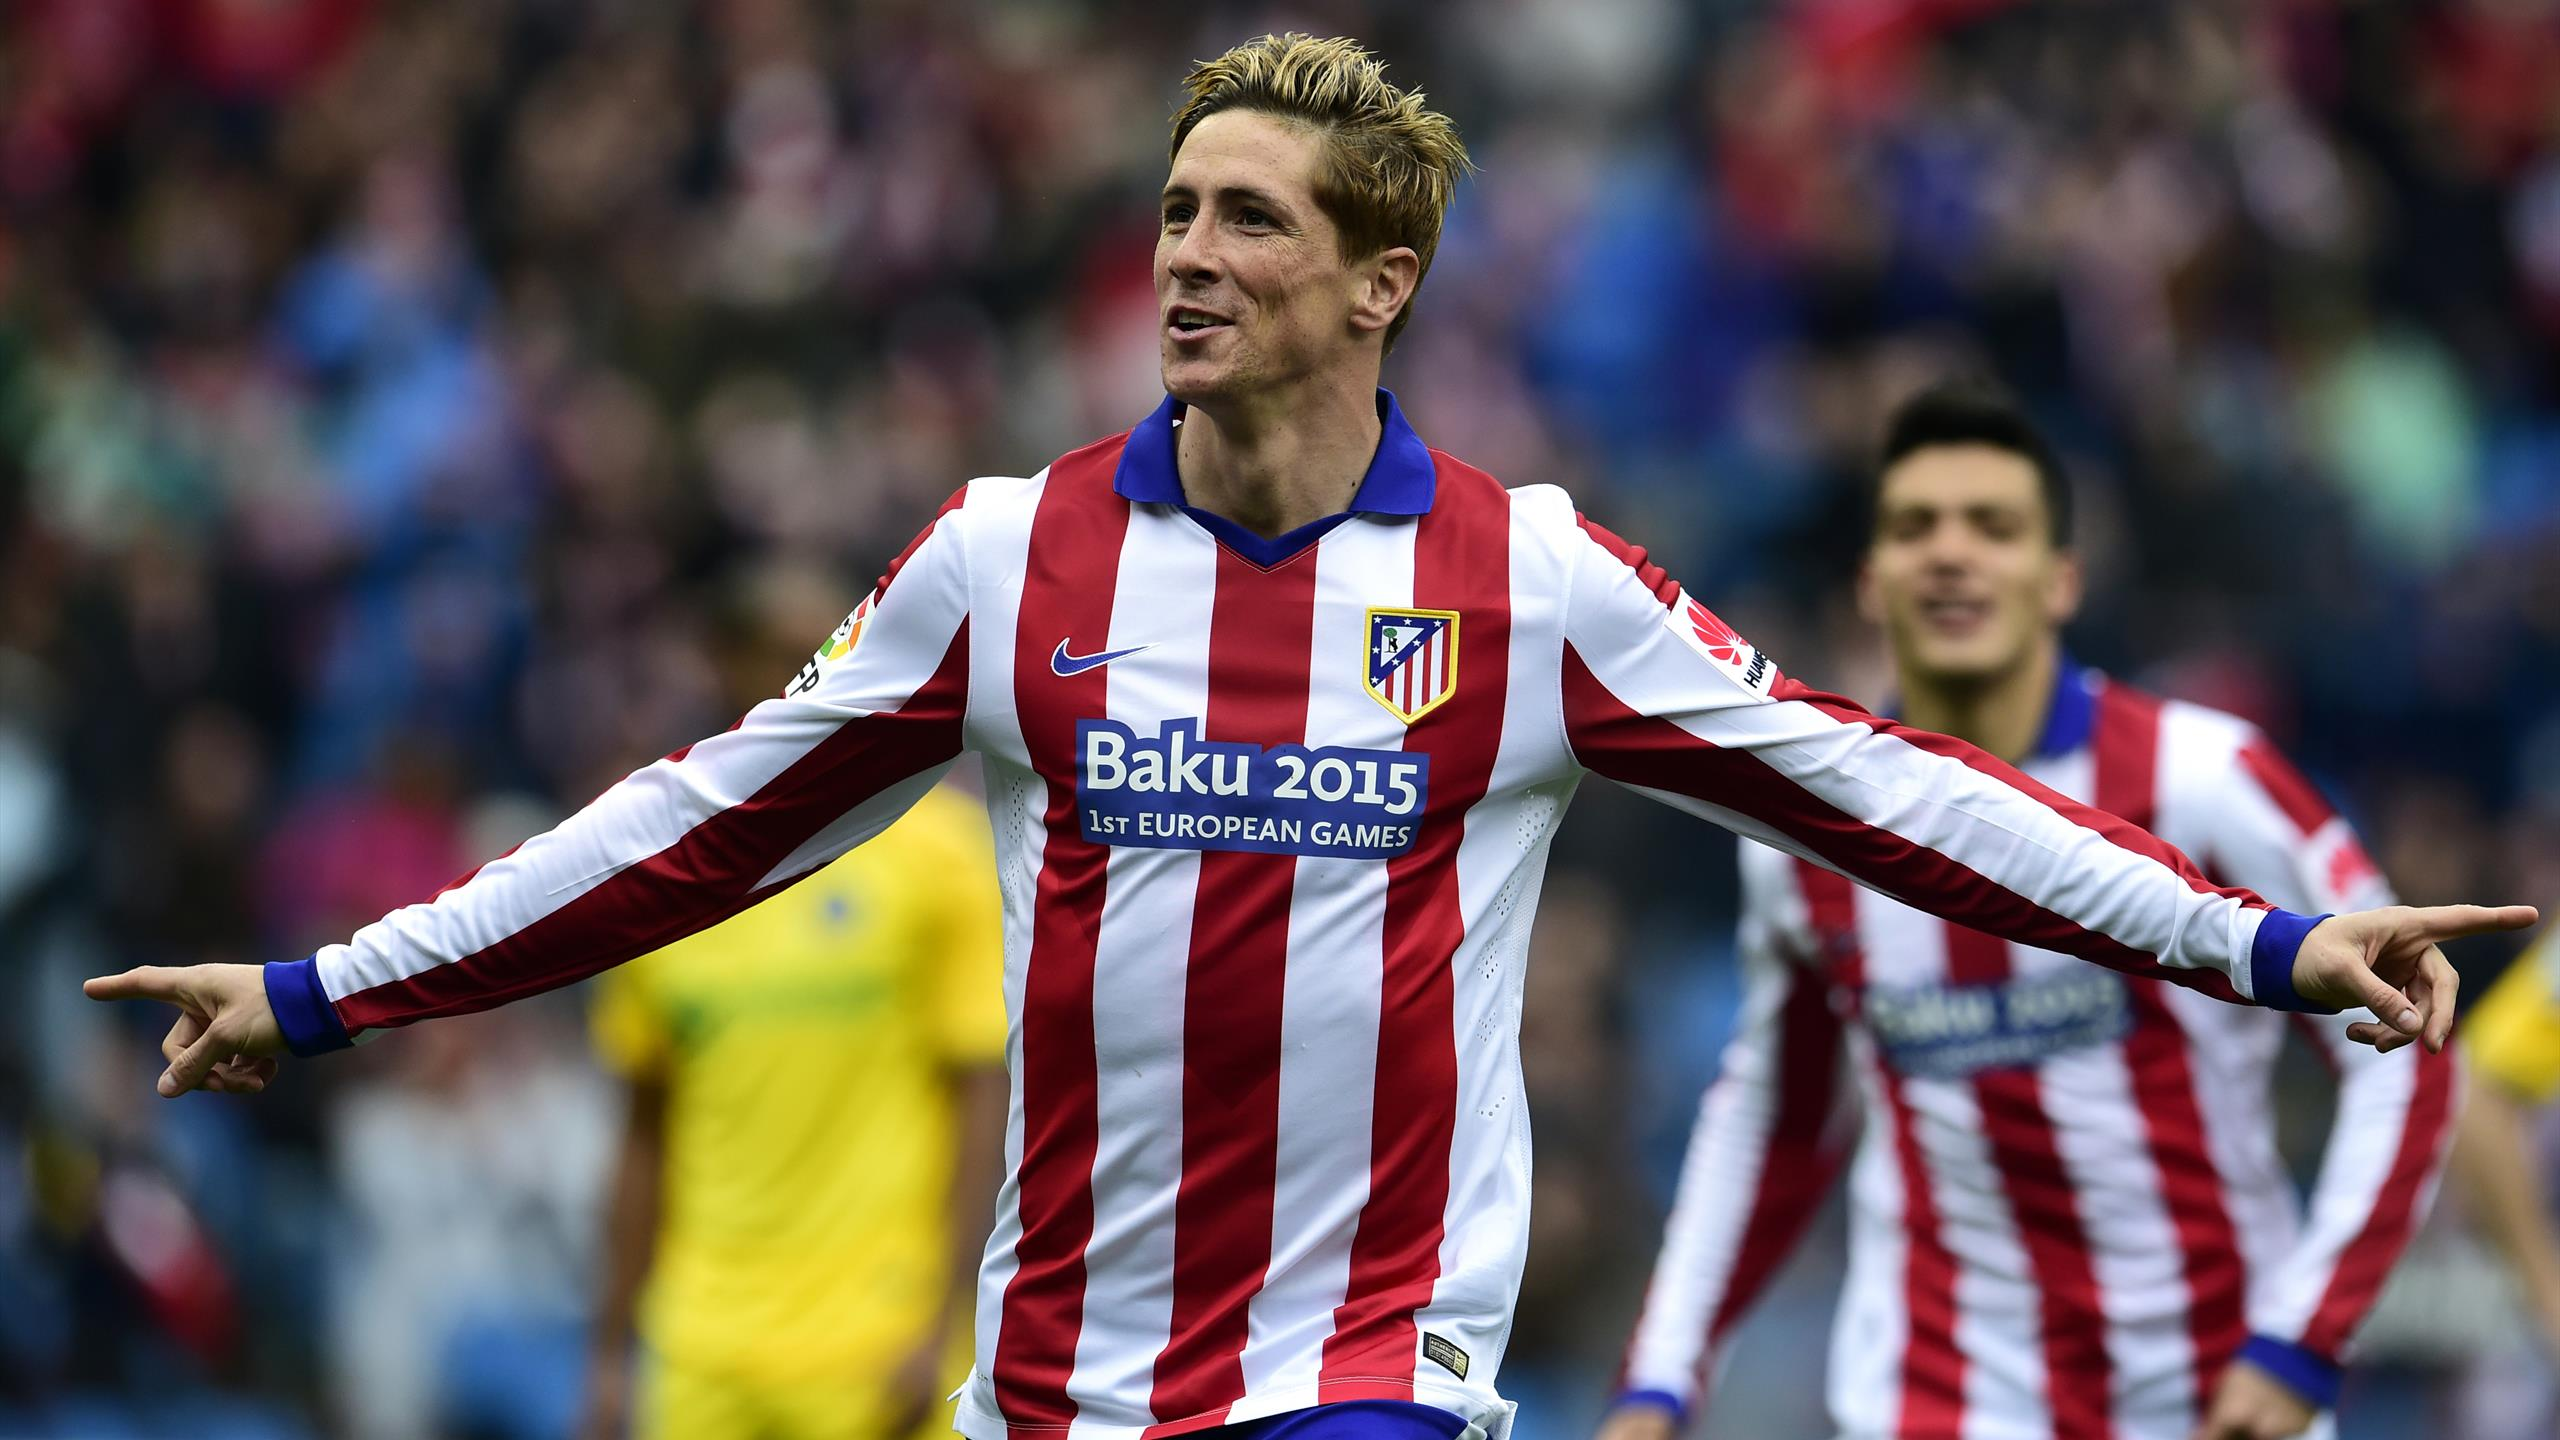 Atletico Madrid's forward Fernando Torres celebrates after scoring a goal during the Spanish league football match Club Atletico de Madrid vs Getafe